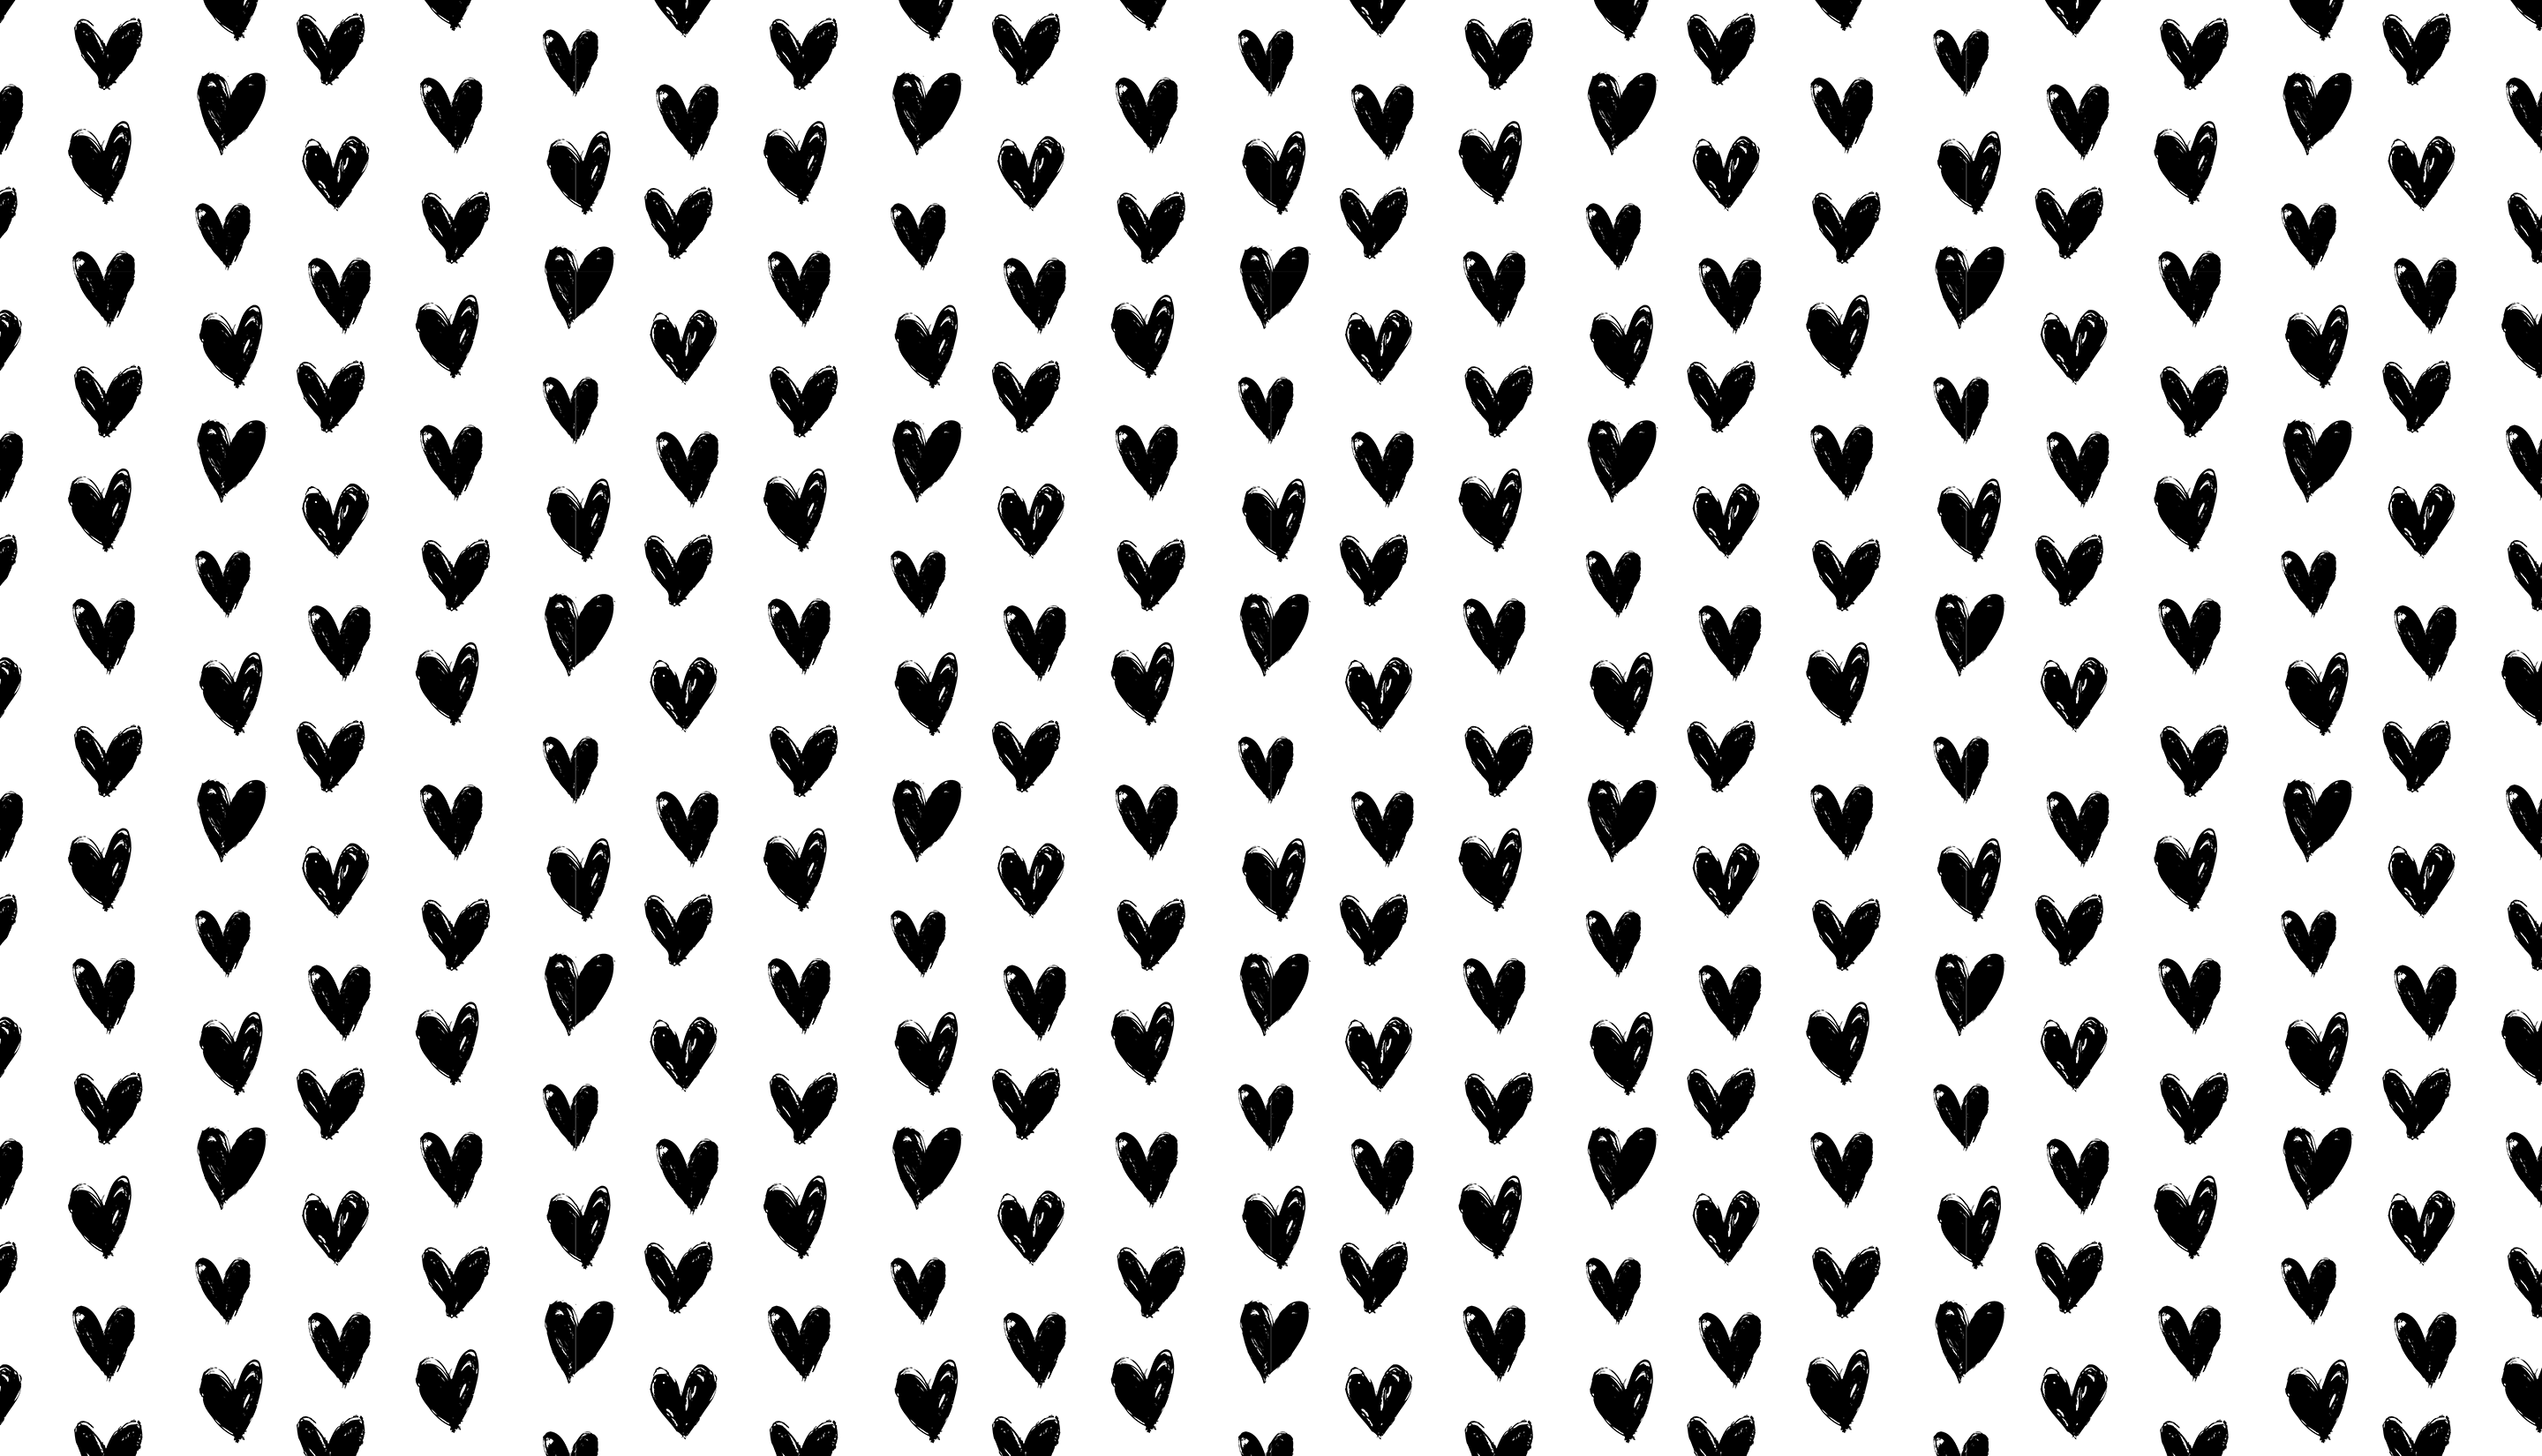 Mary Black And White Hearts Desktop Background Wallpaper Black